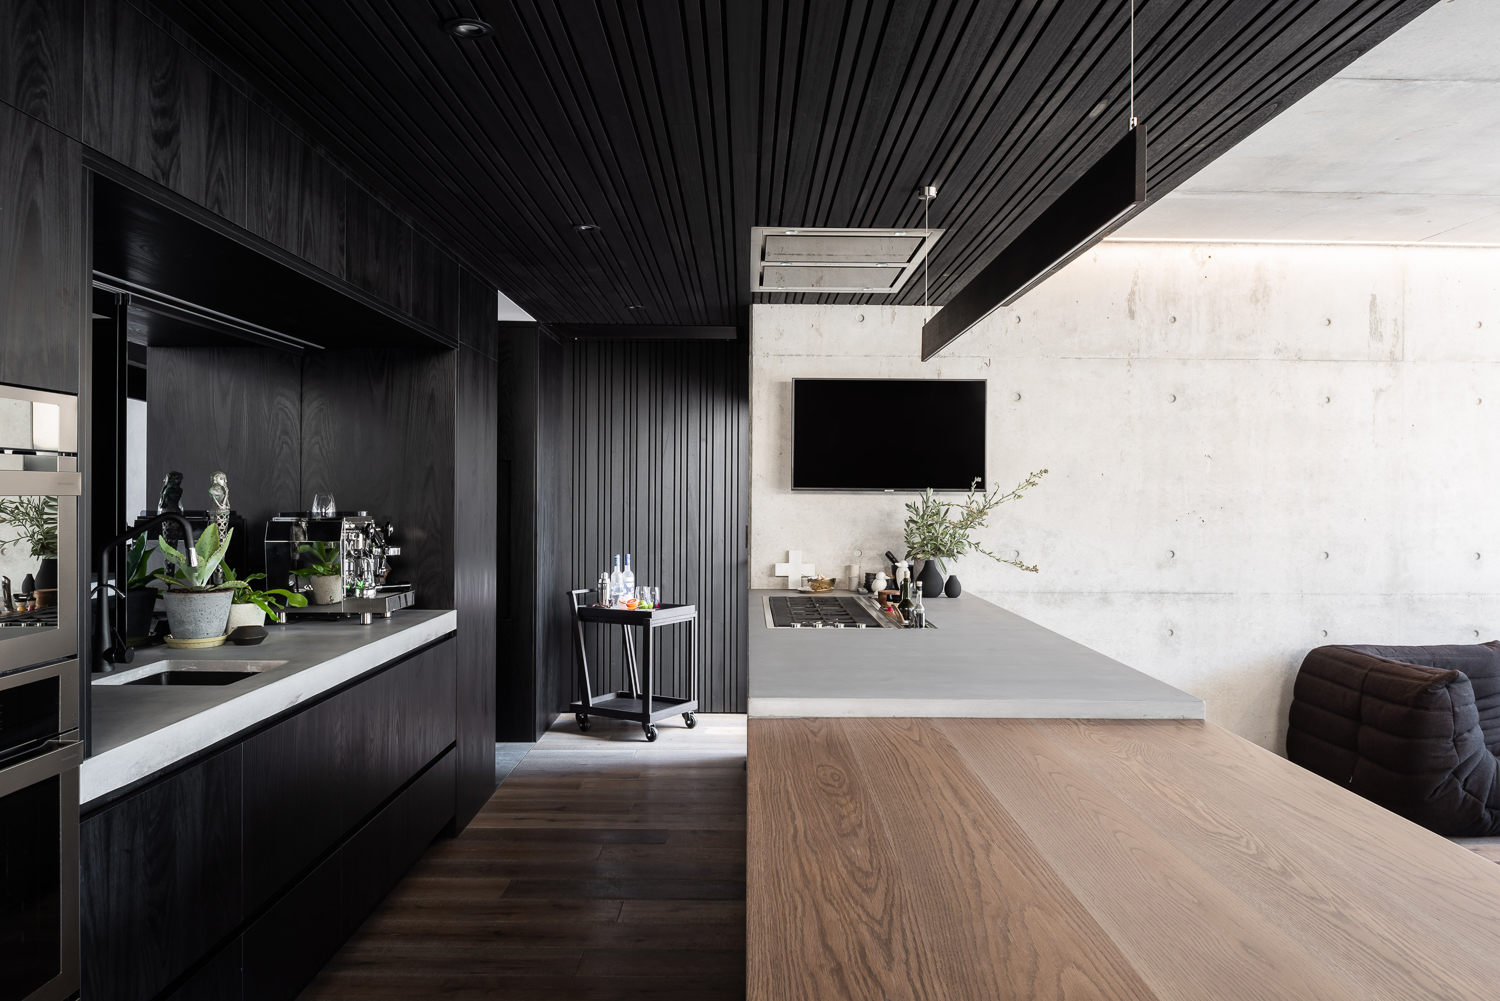 Schweigen rangehood featured in Marcus Browne Architecture